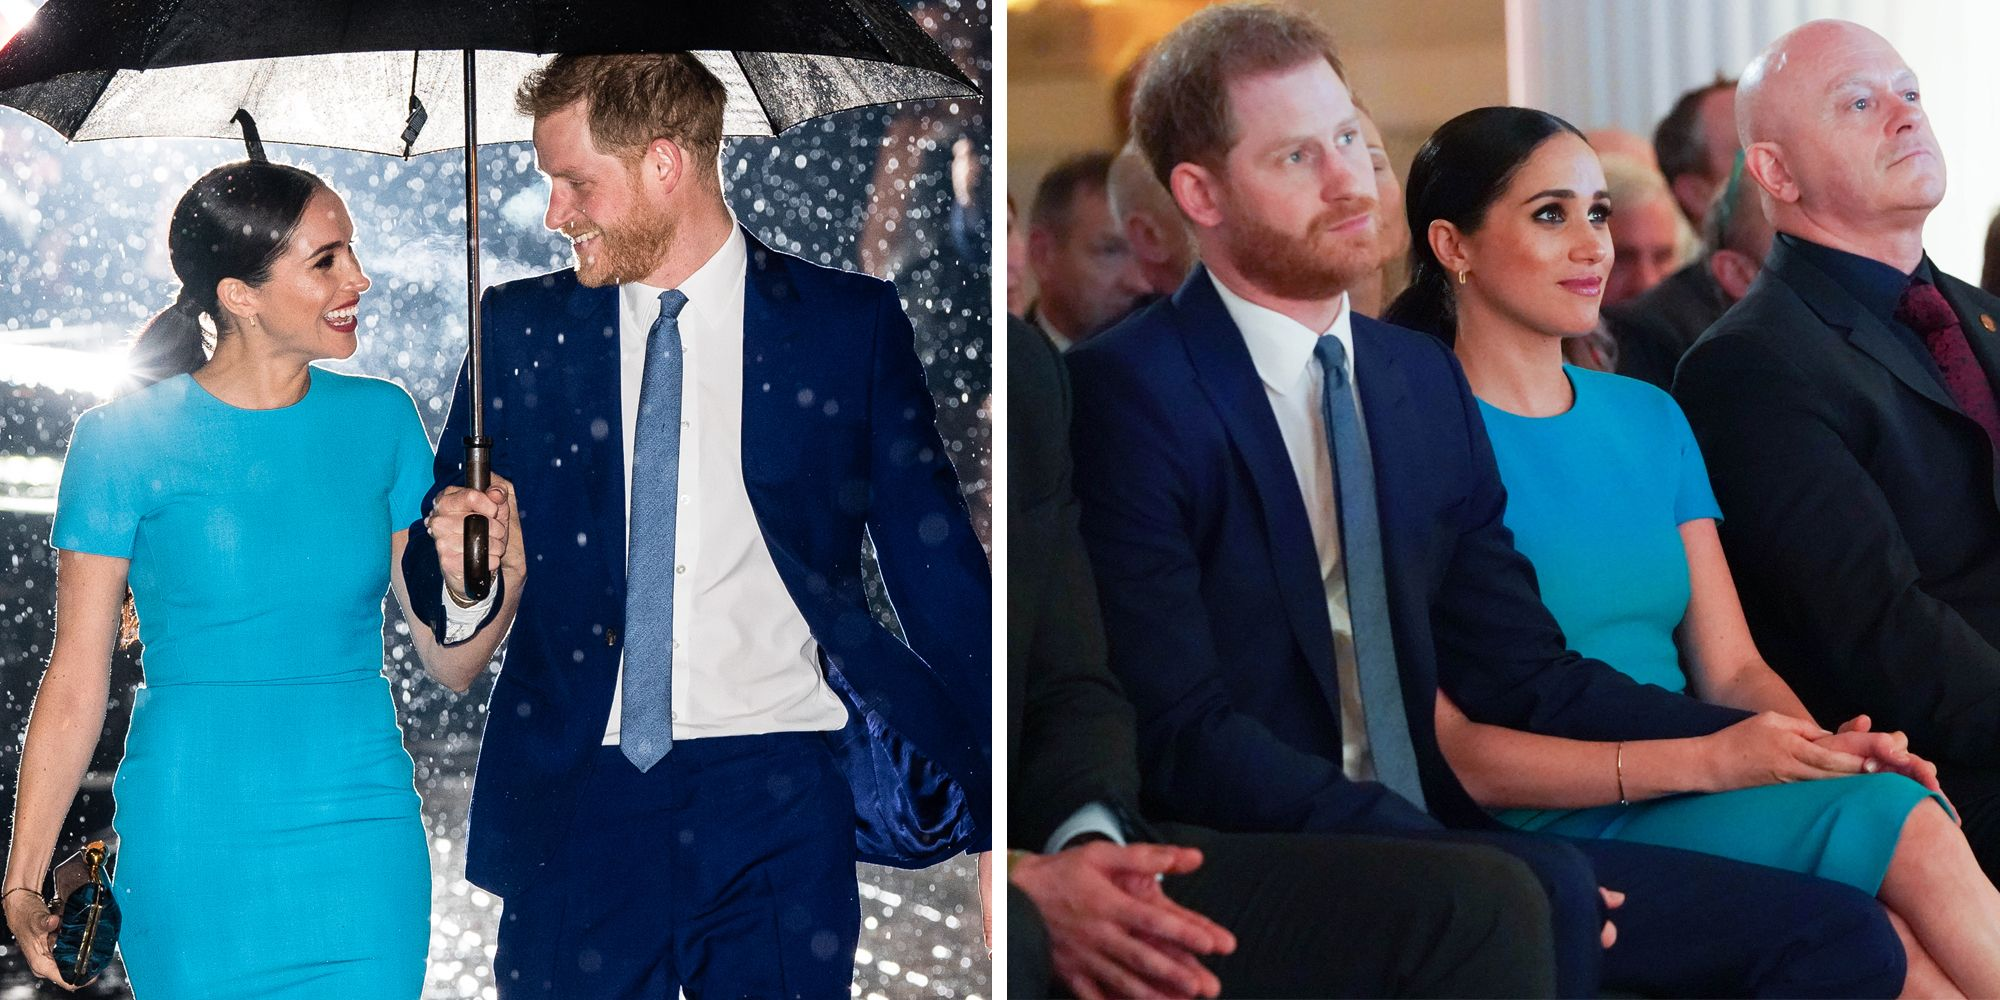 prince harry and meghan markle show pda at endeavor fund awards prince harry and meghan markle show pda